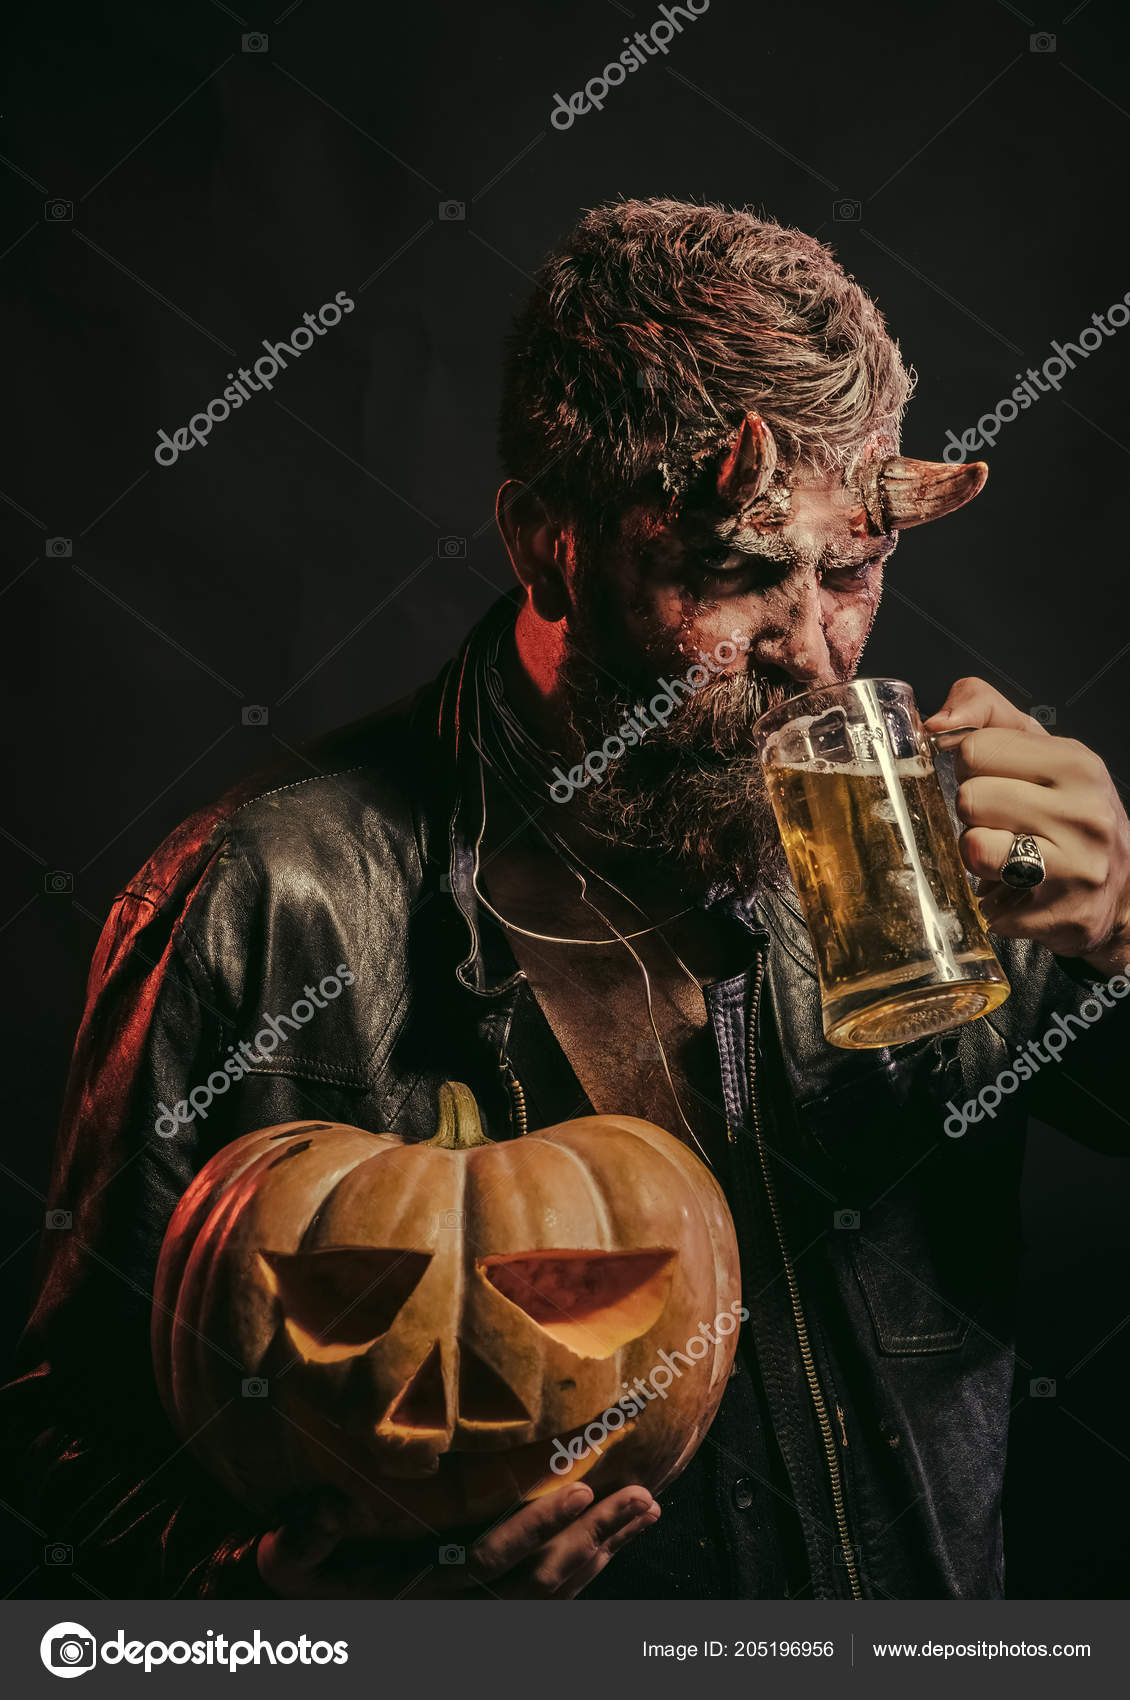 Halloween Maan.Halloween Man With Satan Horns Hold Pumpkin Stock Photo